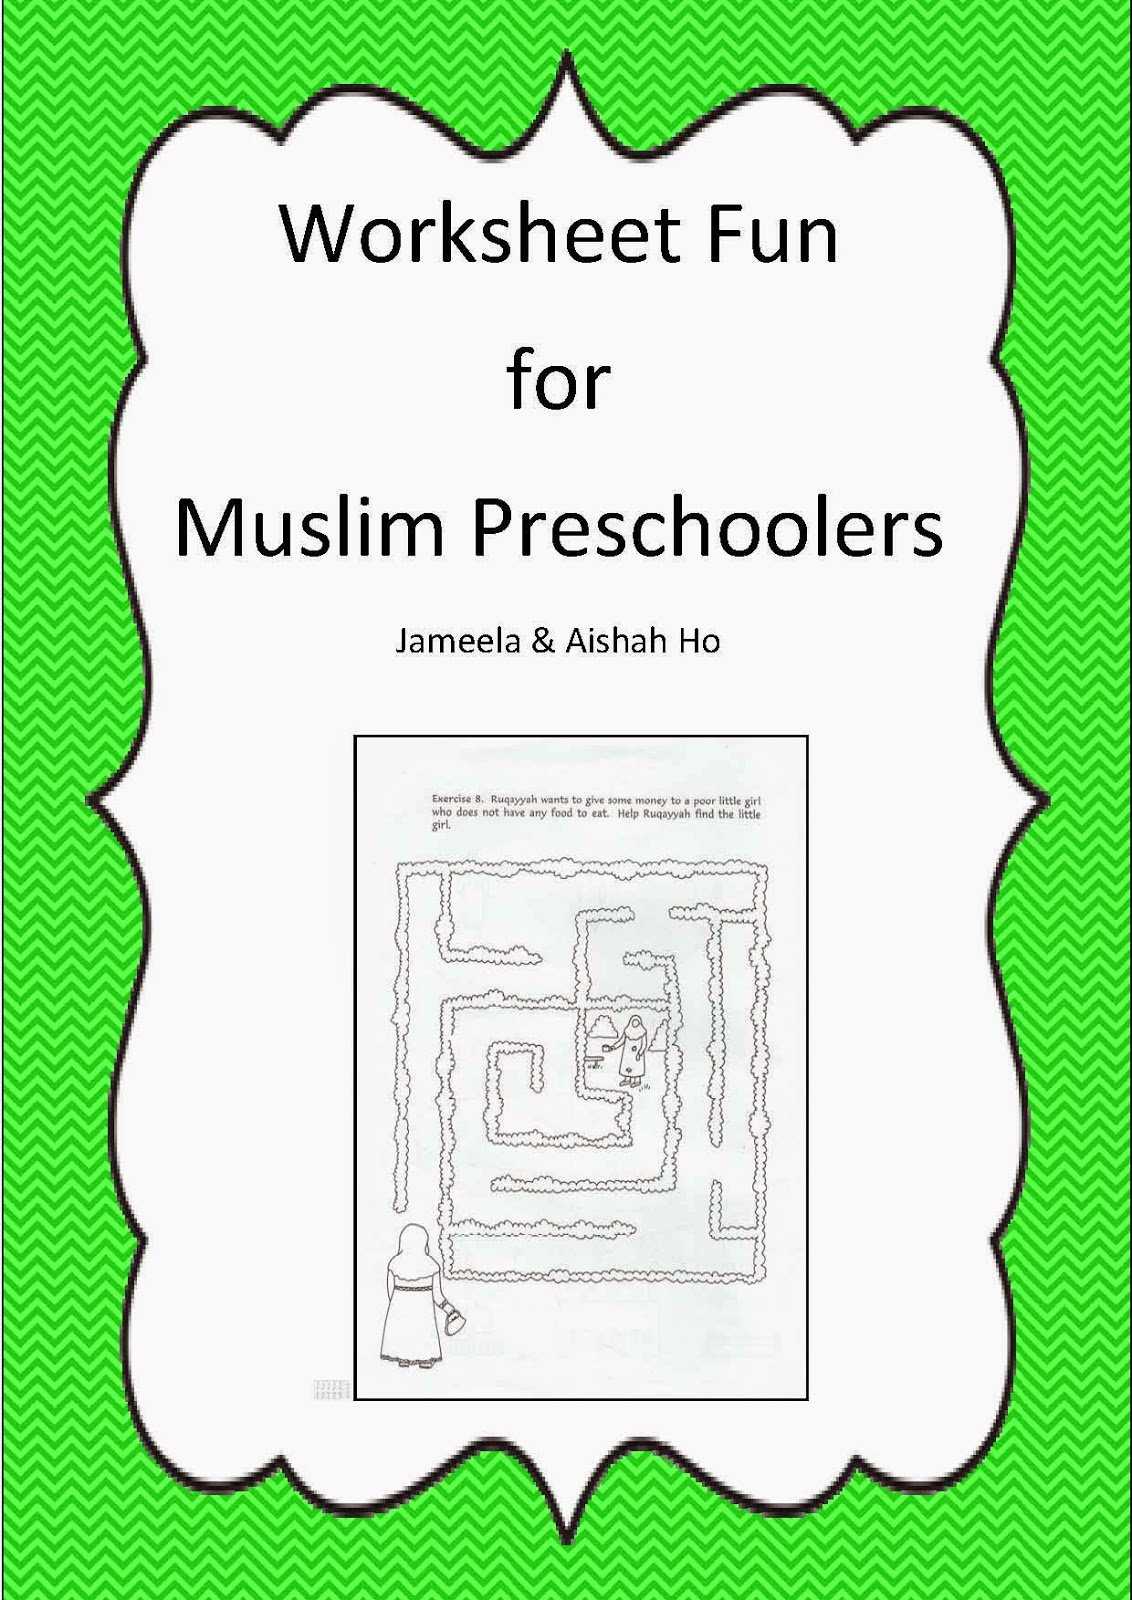 ILMA Education: Free Download: Worksheet Fun for Muslim Preschoolers